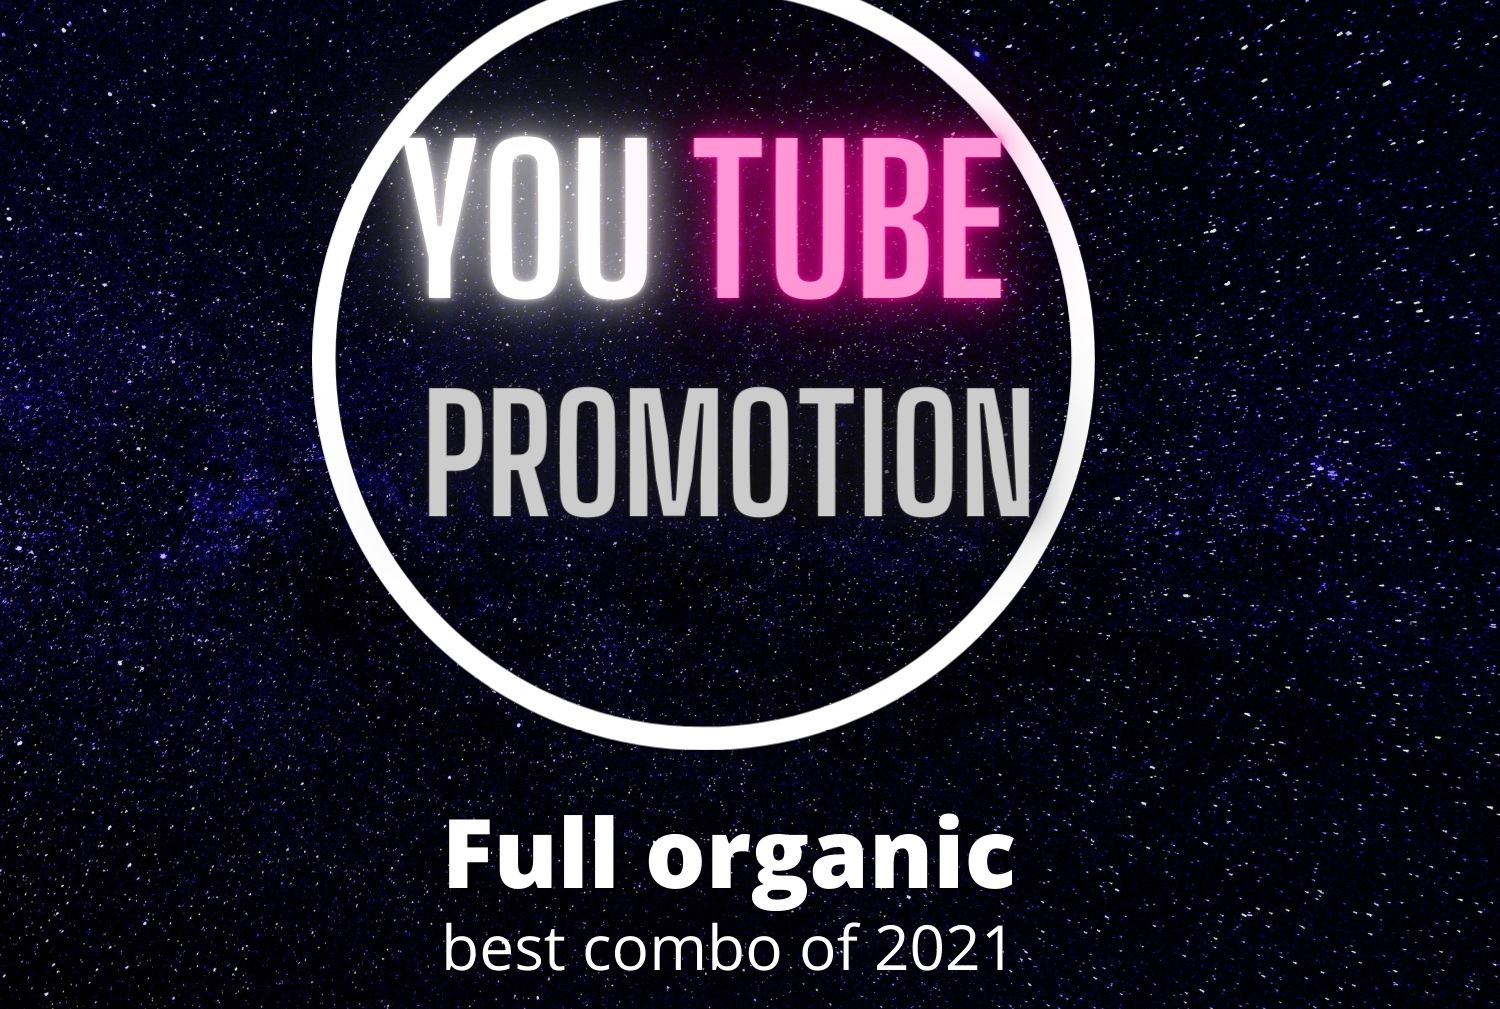 I will give you best 2021 you tube promotion combo in organic process